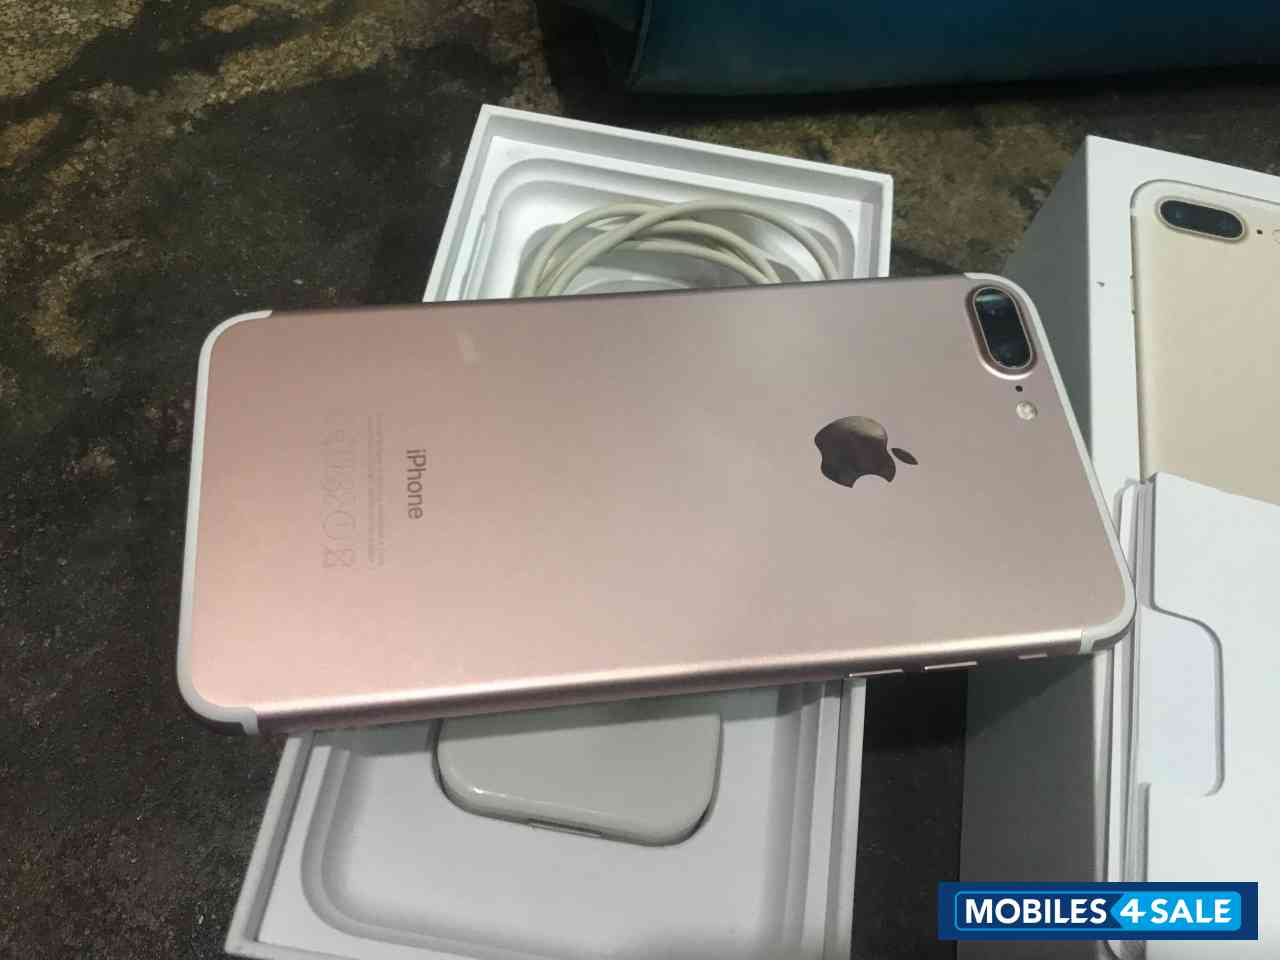 Apple  Iphone 7plus 128 gp rose gold